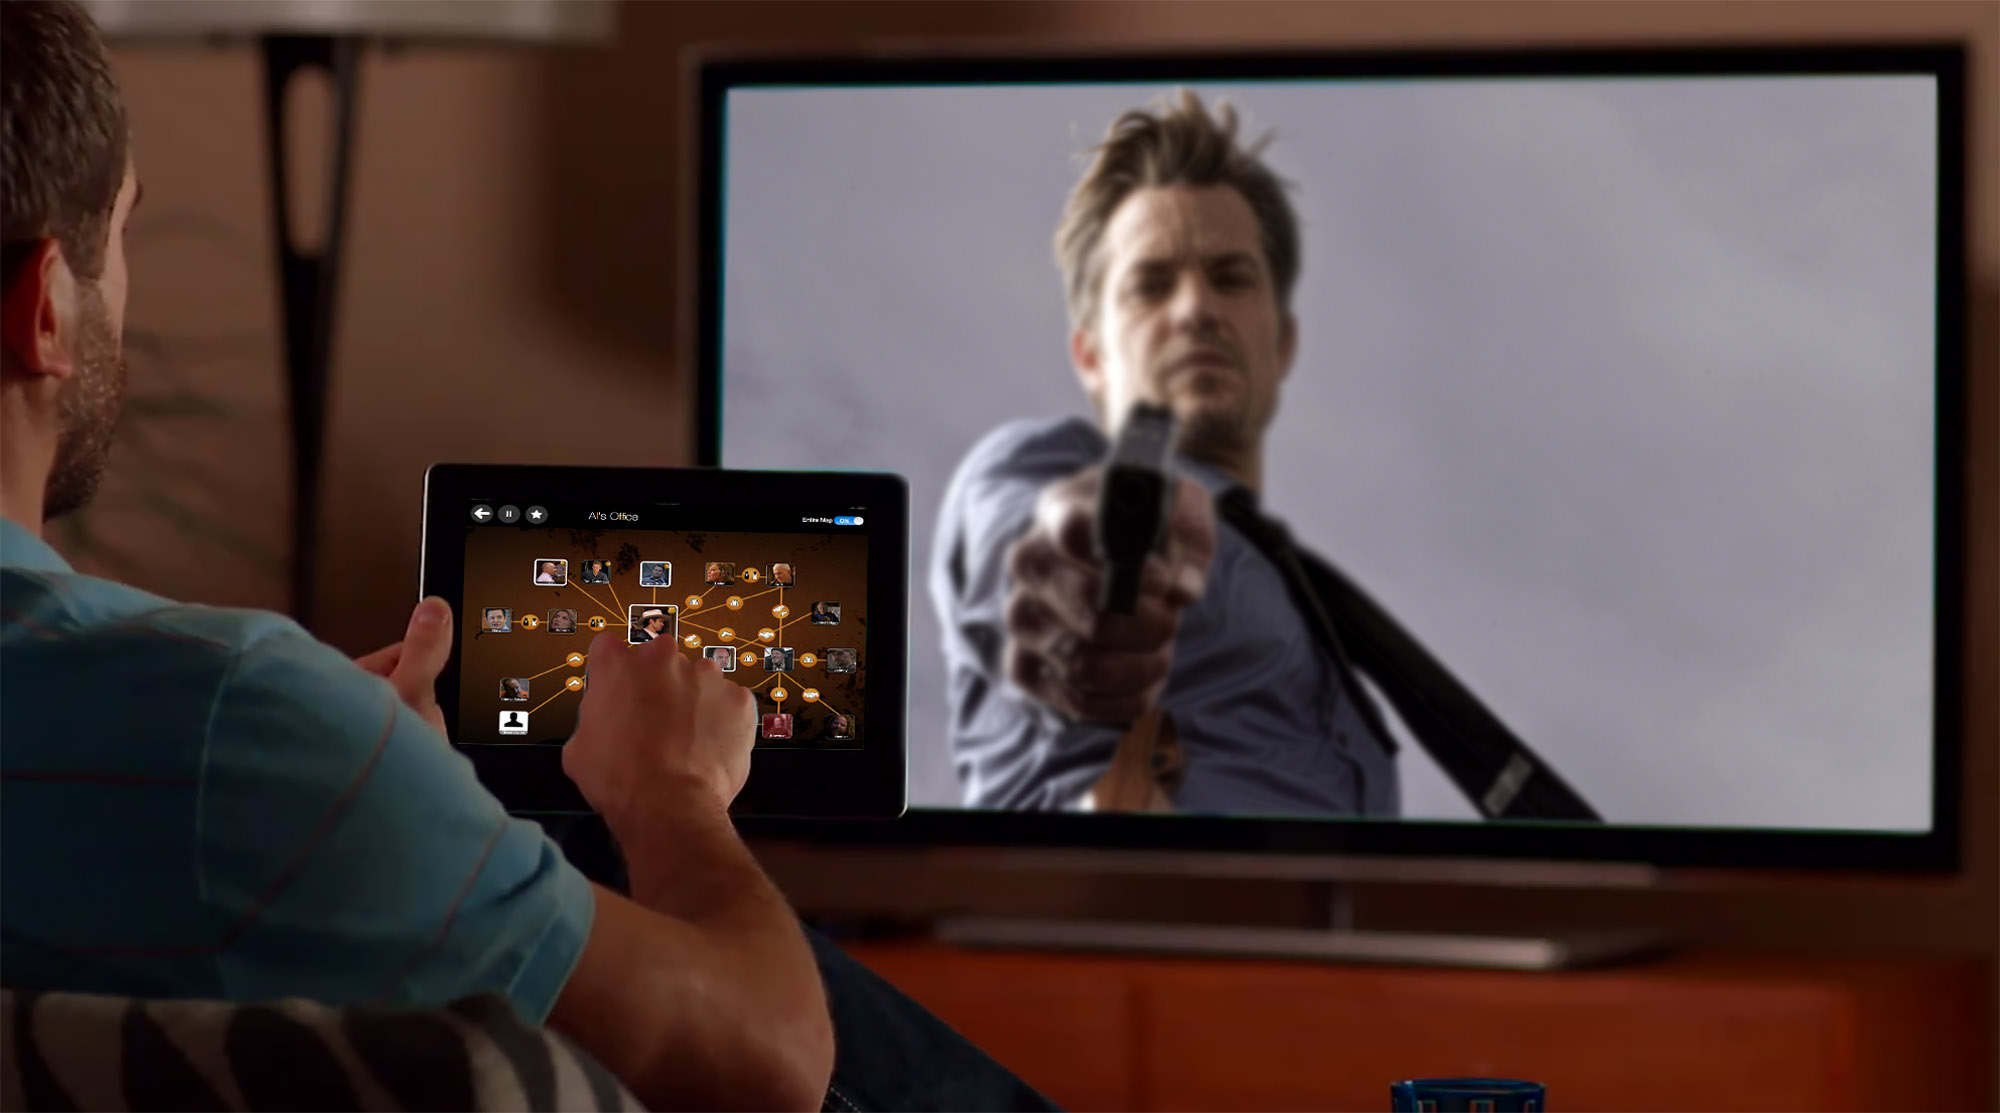 The iPad displays a map of the relationships among the many characters, grouping them geographically as they appear in the story without any spoiler revelations.